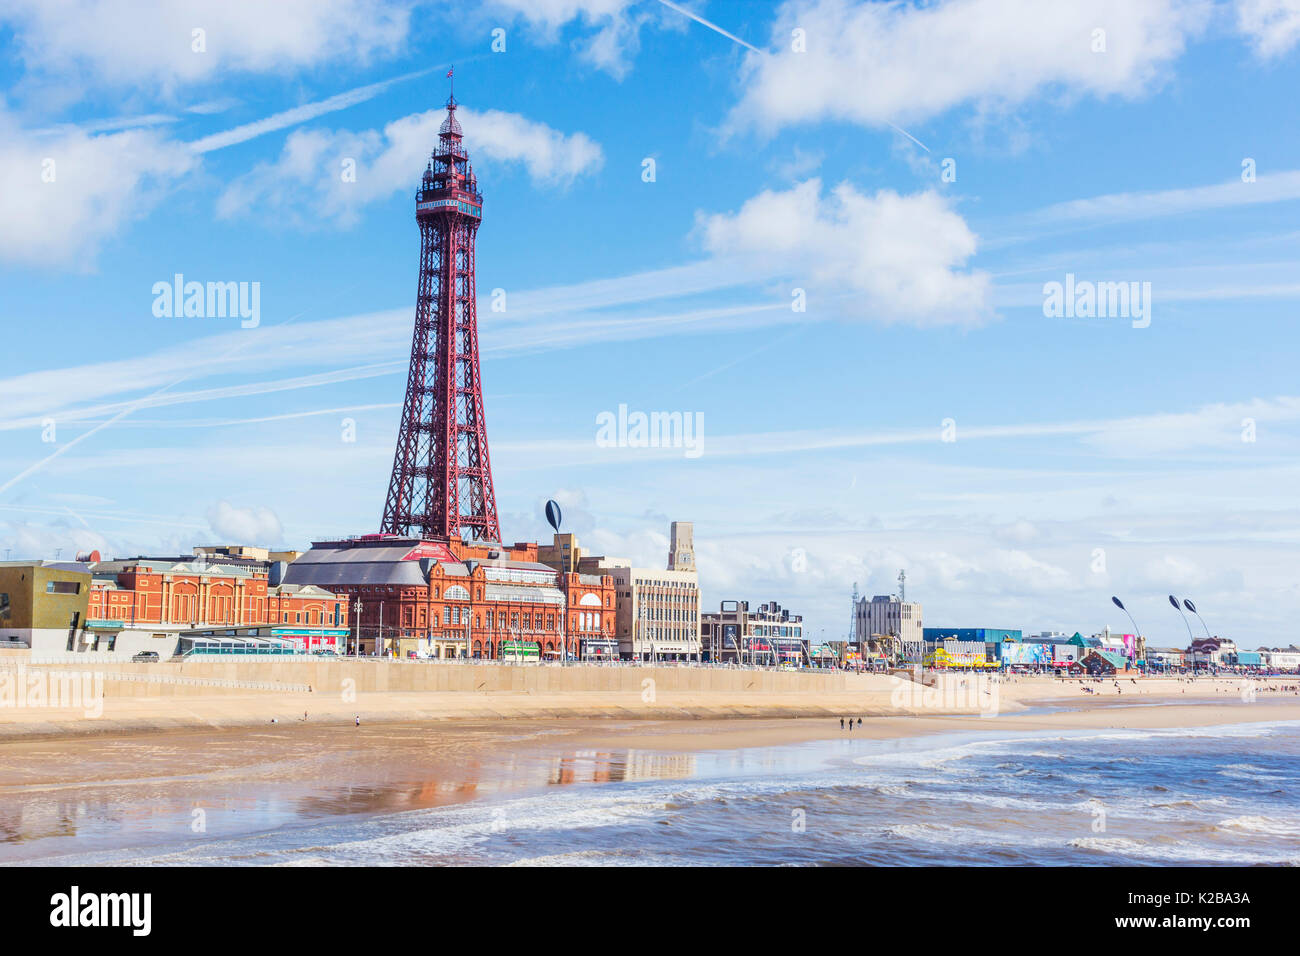 Blackpool, Fylde Coast, Lancashire, England.  The Blackpool Tower, opened on14 May 1894 and inspired by the Eiffel Tower in Paris, it stands 518 feet  - Stock Image